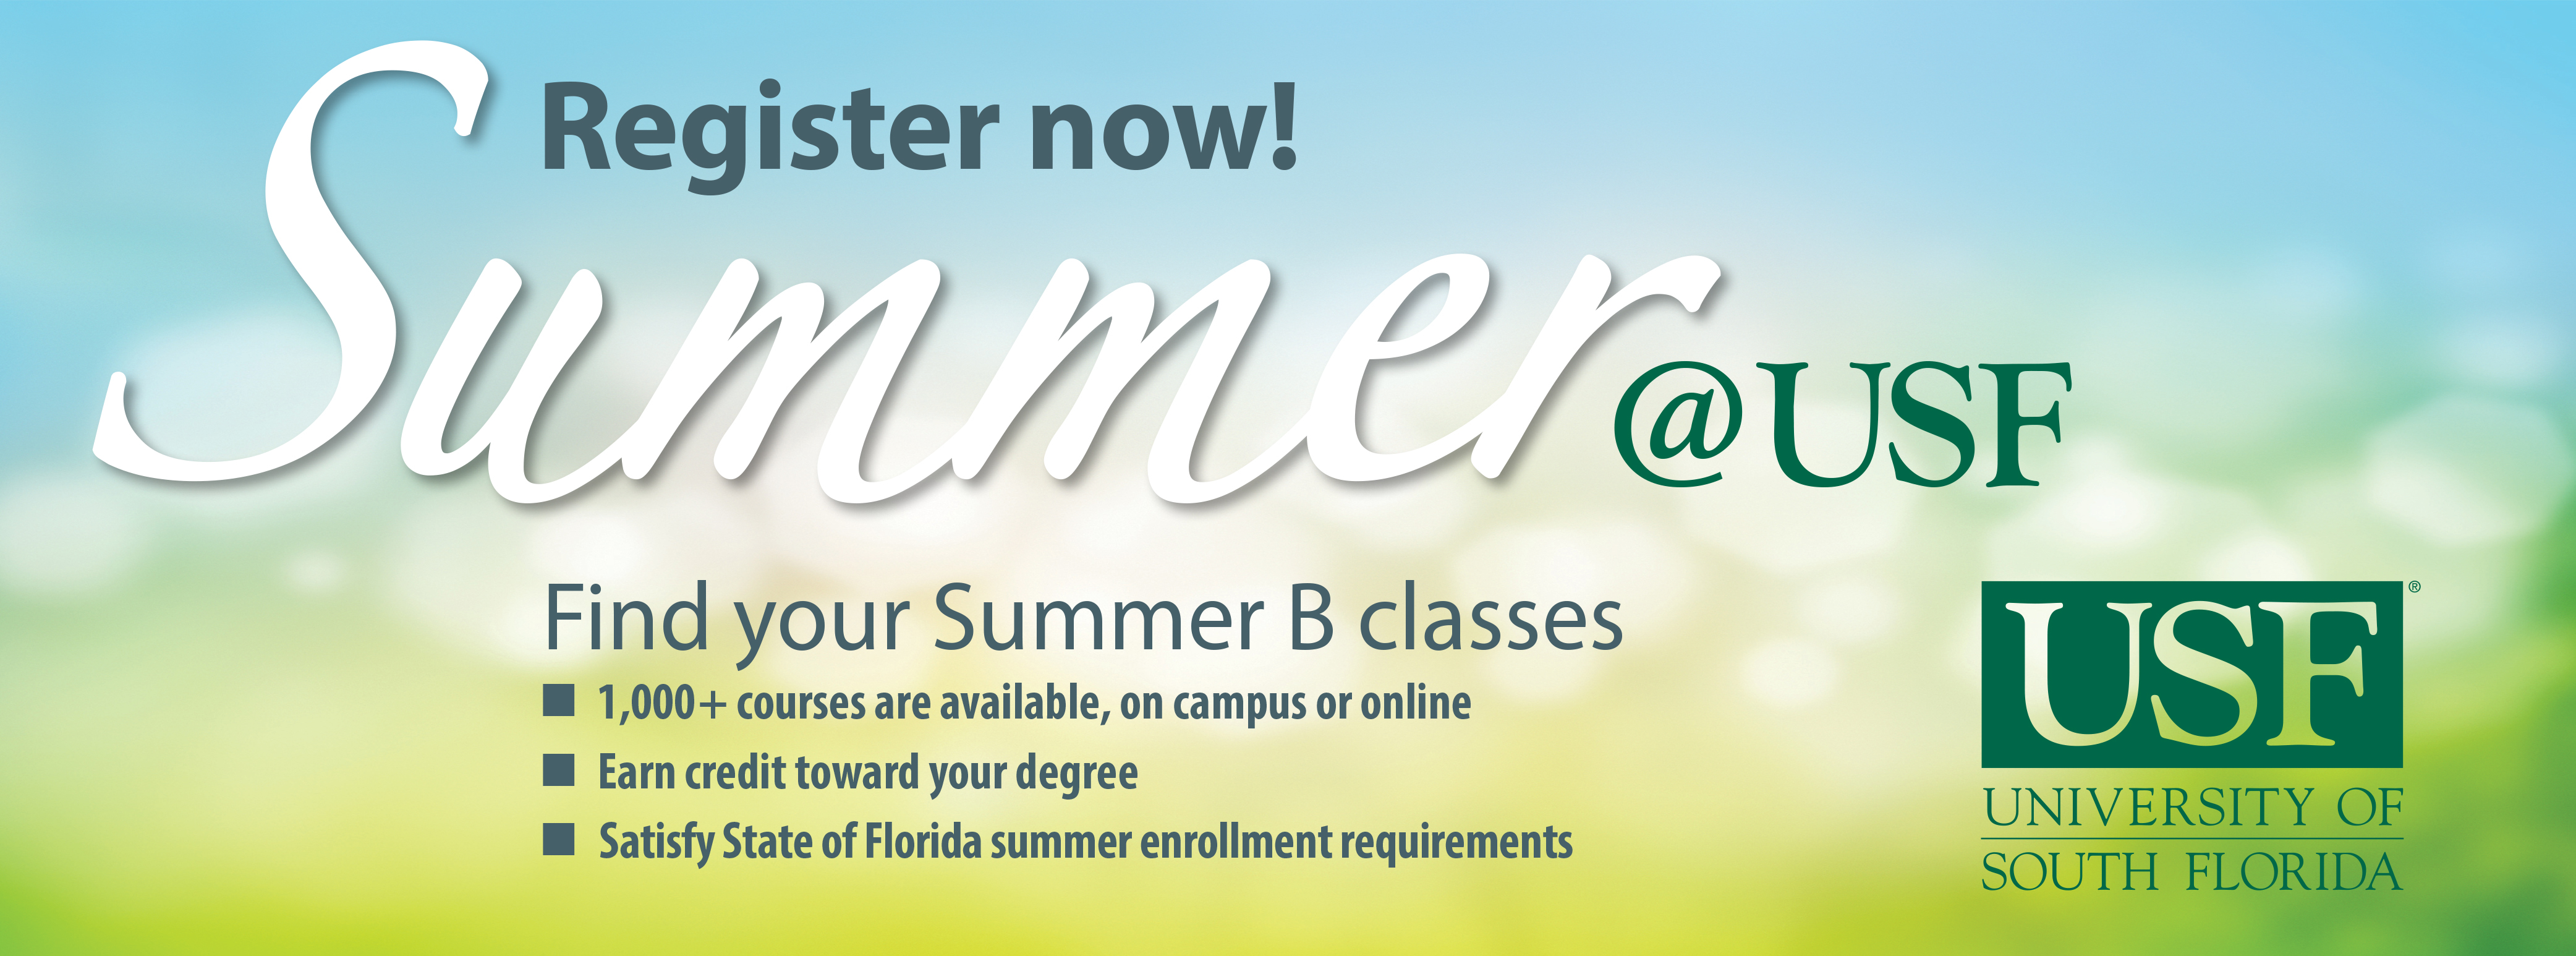 Summer at USF